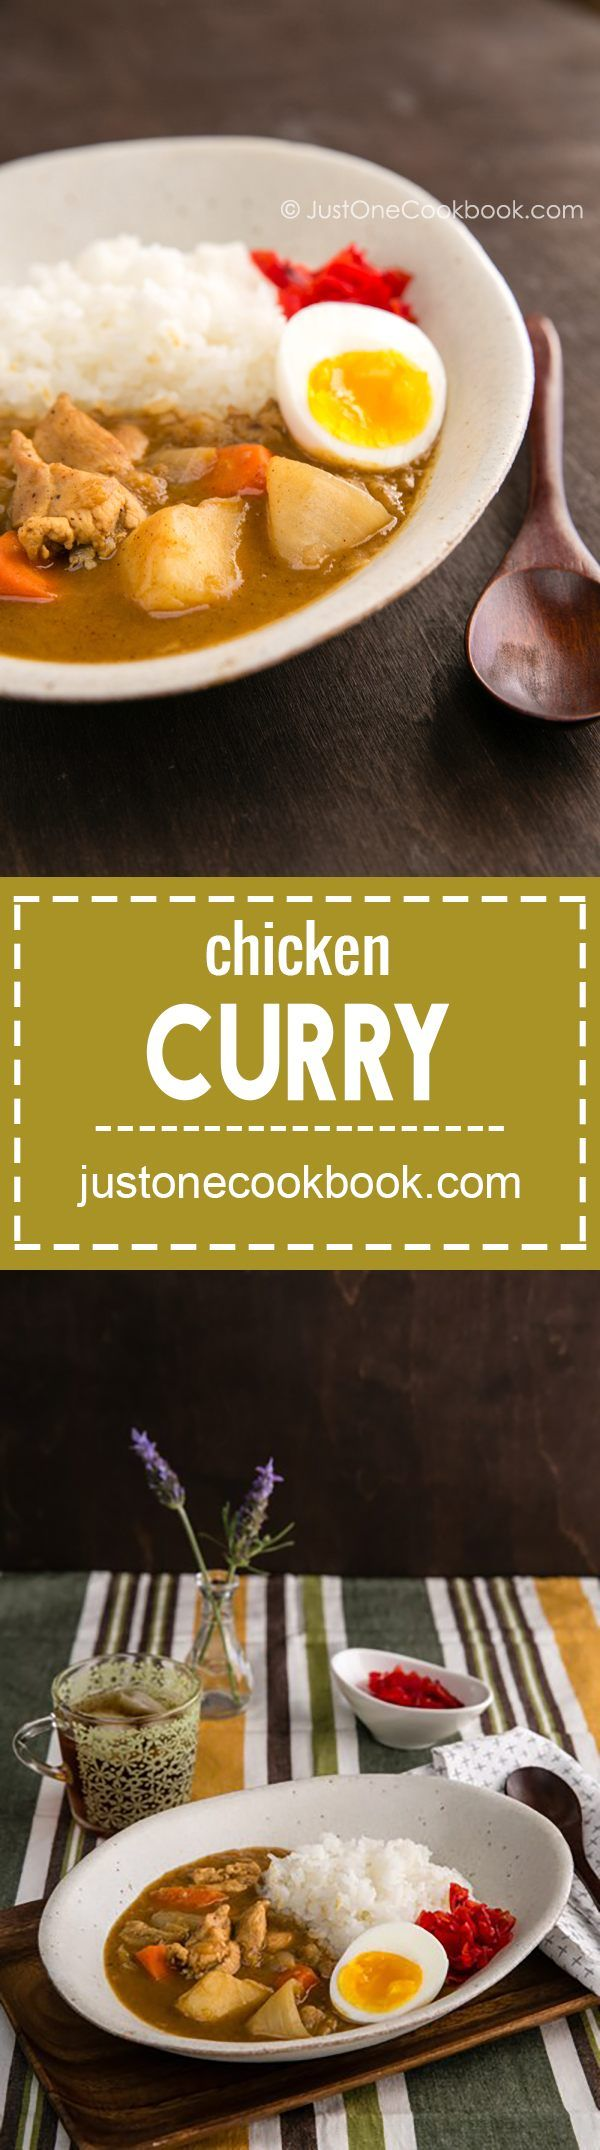 Japanese Chicken Curry チキンカレー Just One Cookbook Recipe Curry Chicken Recipes Easy Japanese Recipes